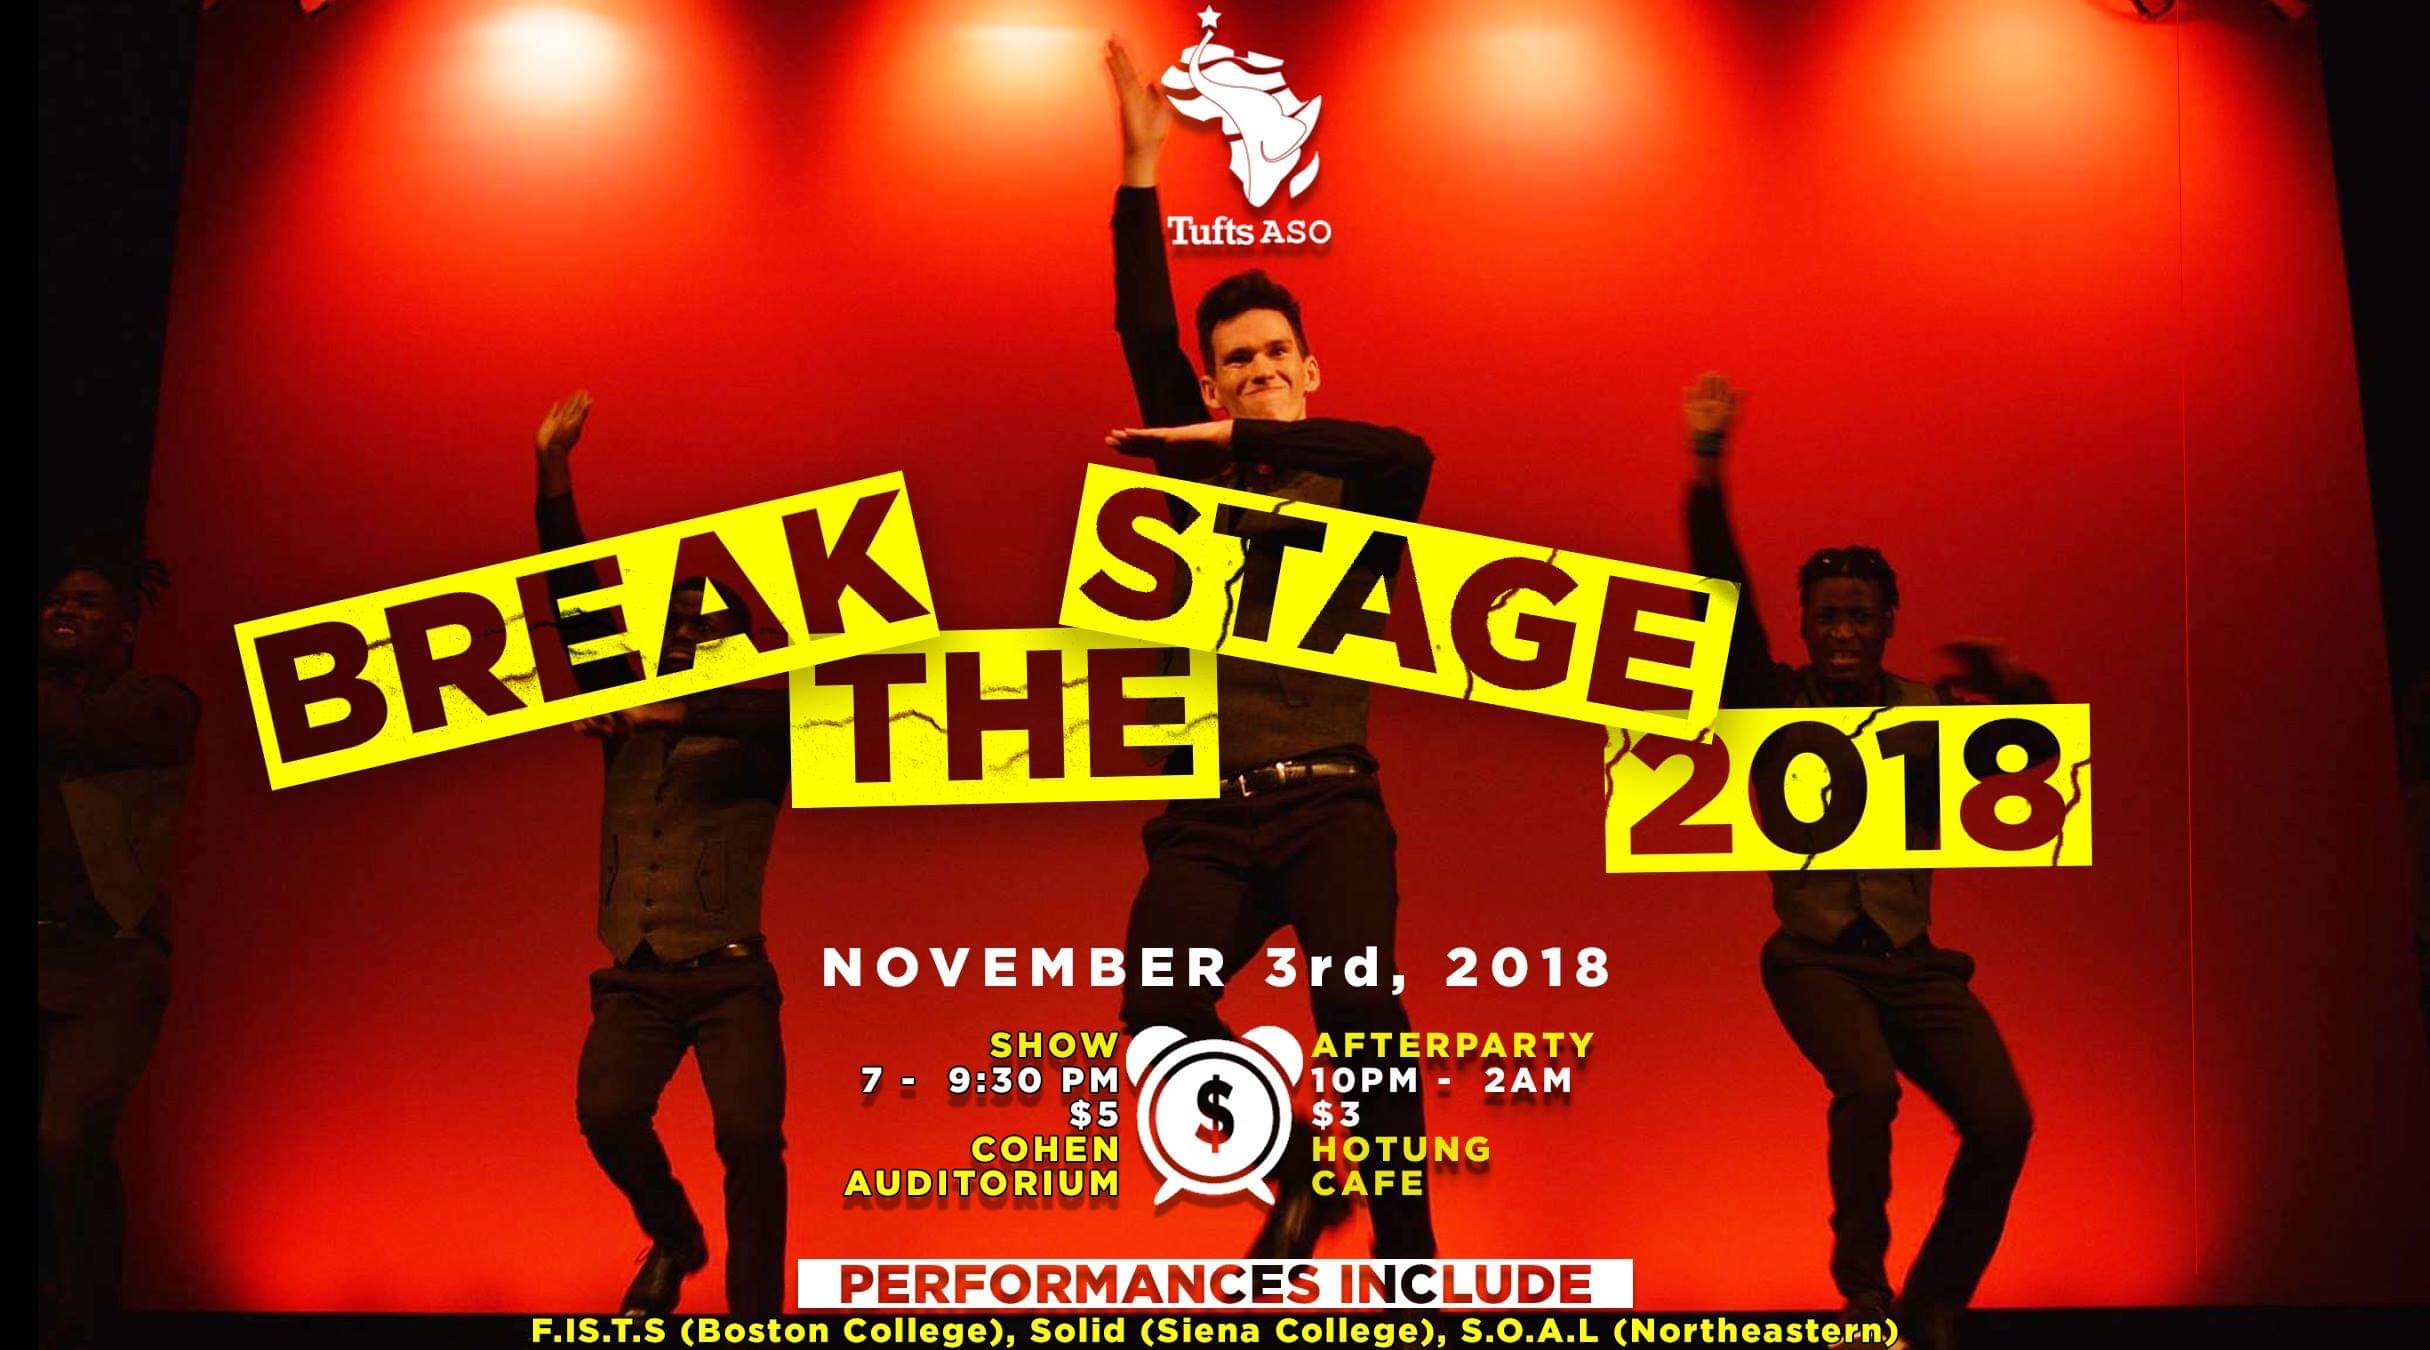 Break The Stage - Tufts ASO